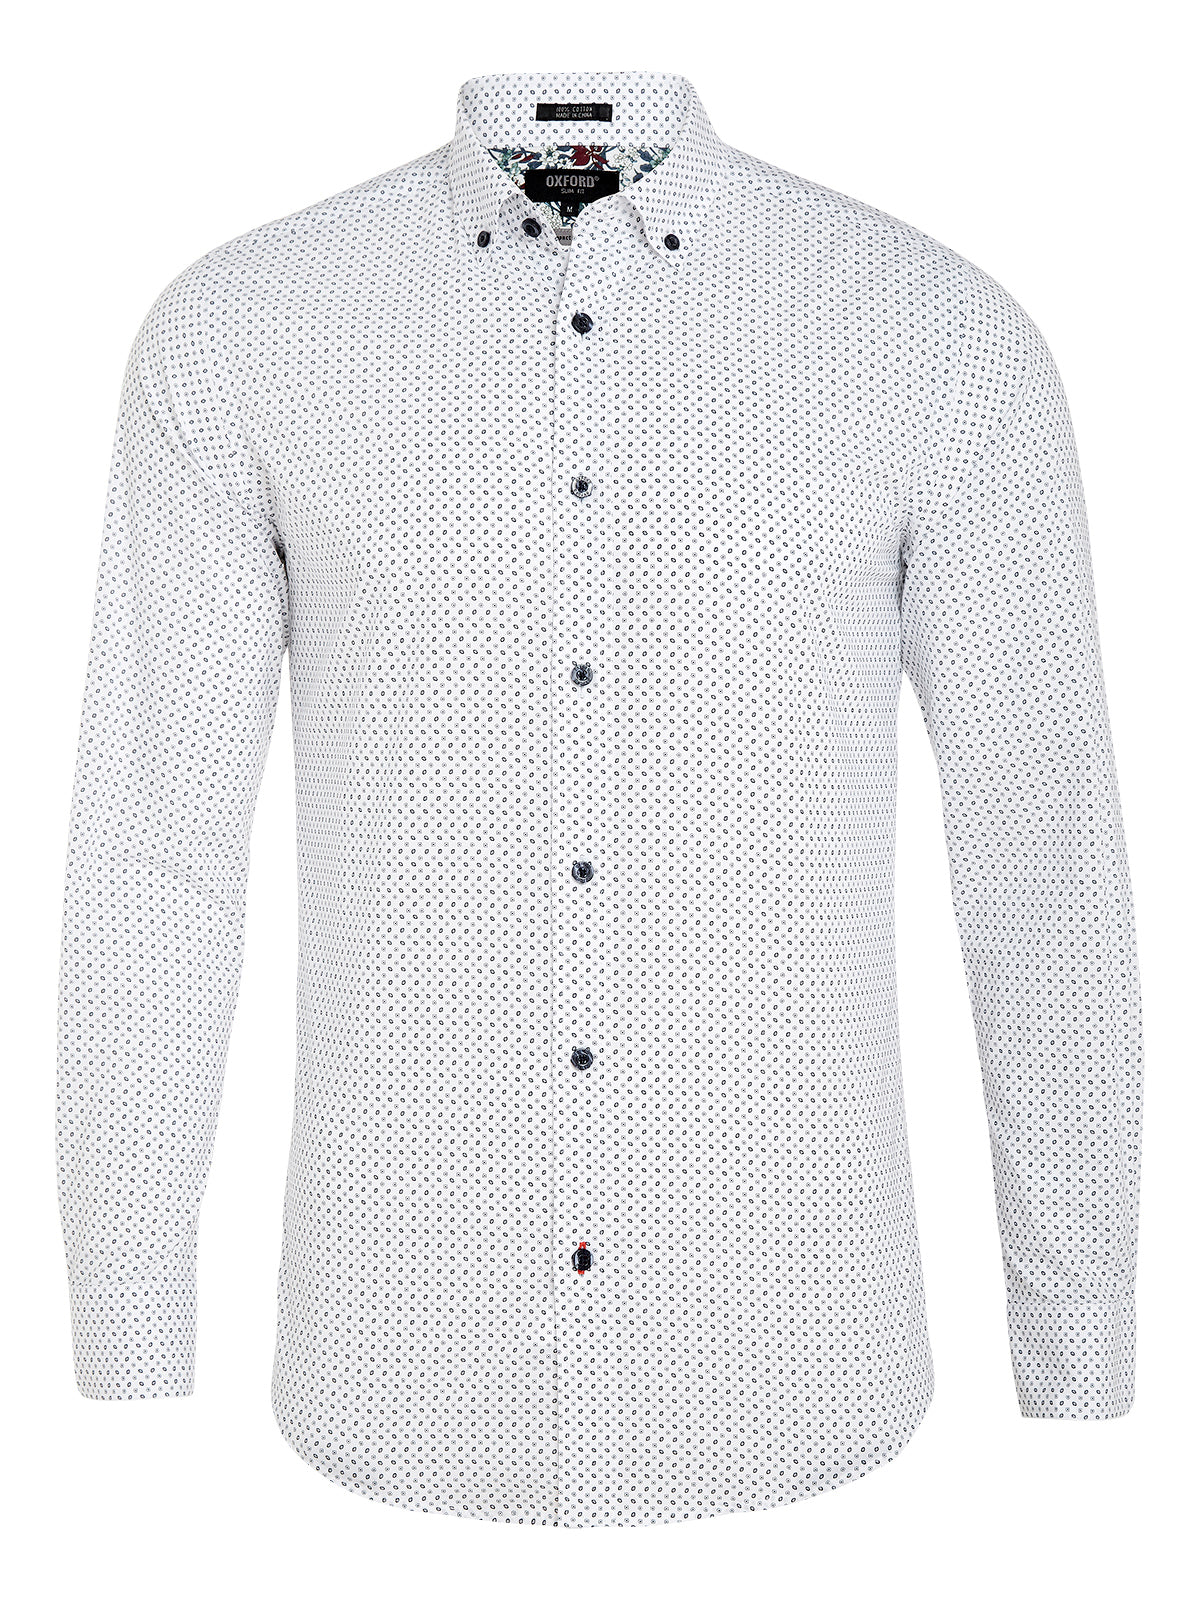 STRATTON MINI PRINT SHIRT NVY/WHT